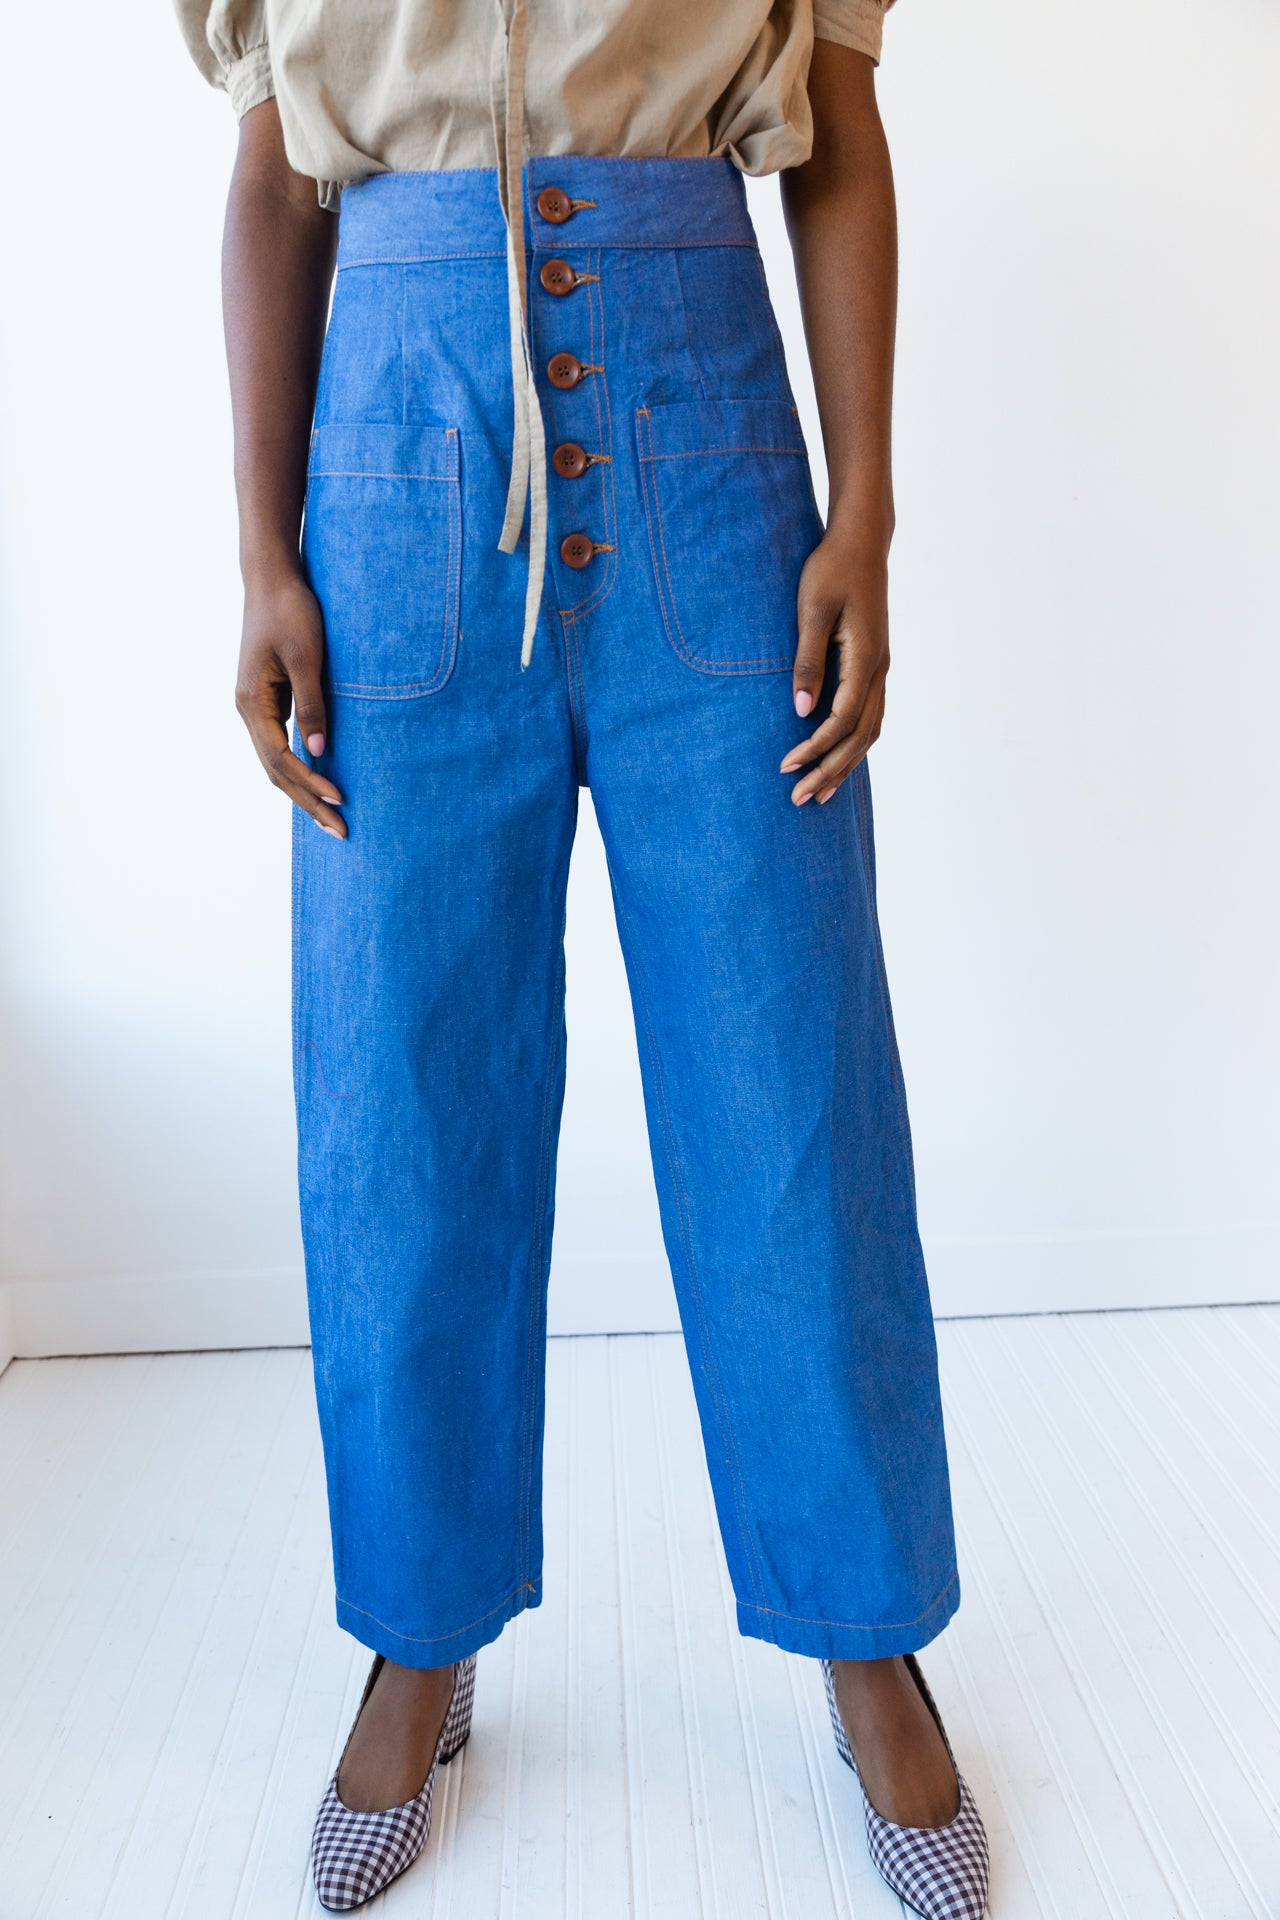 EMILY PANT | BLUE DENIM